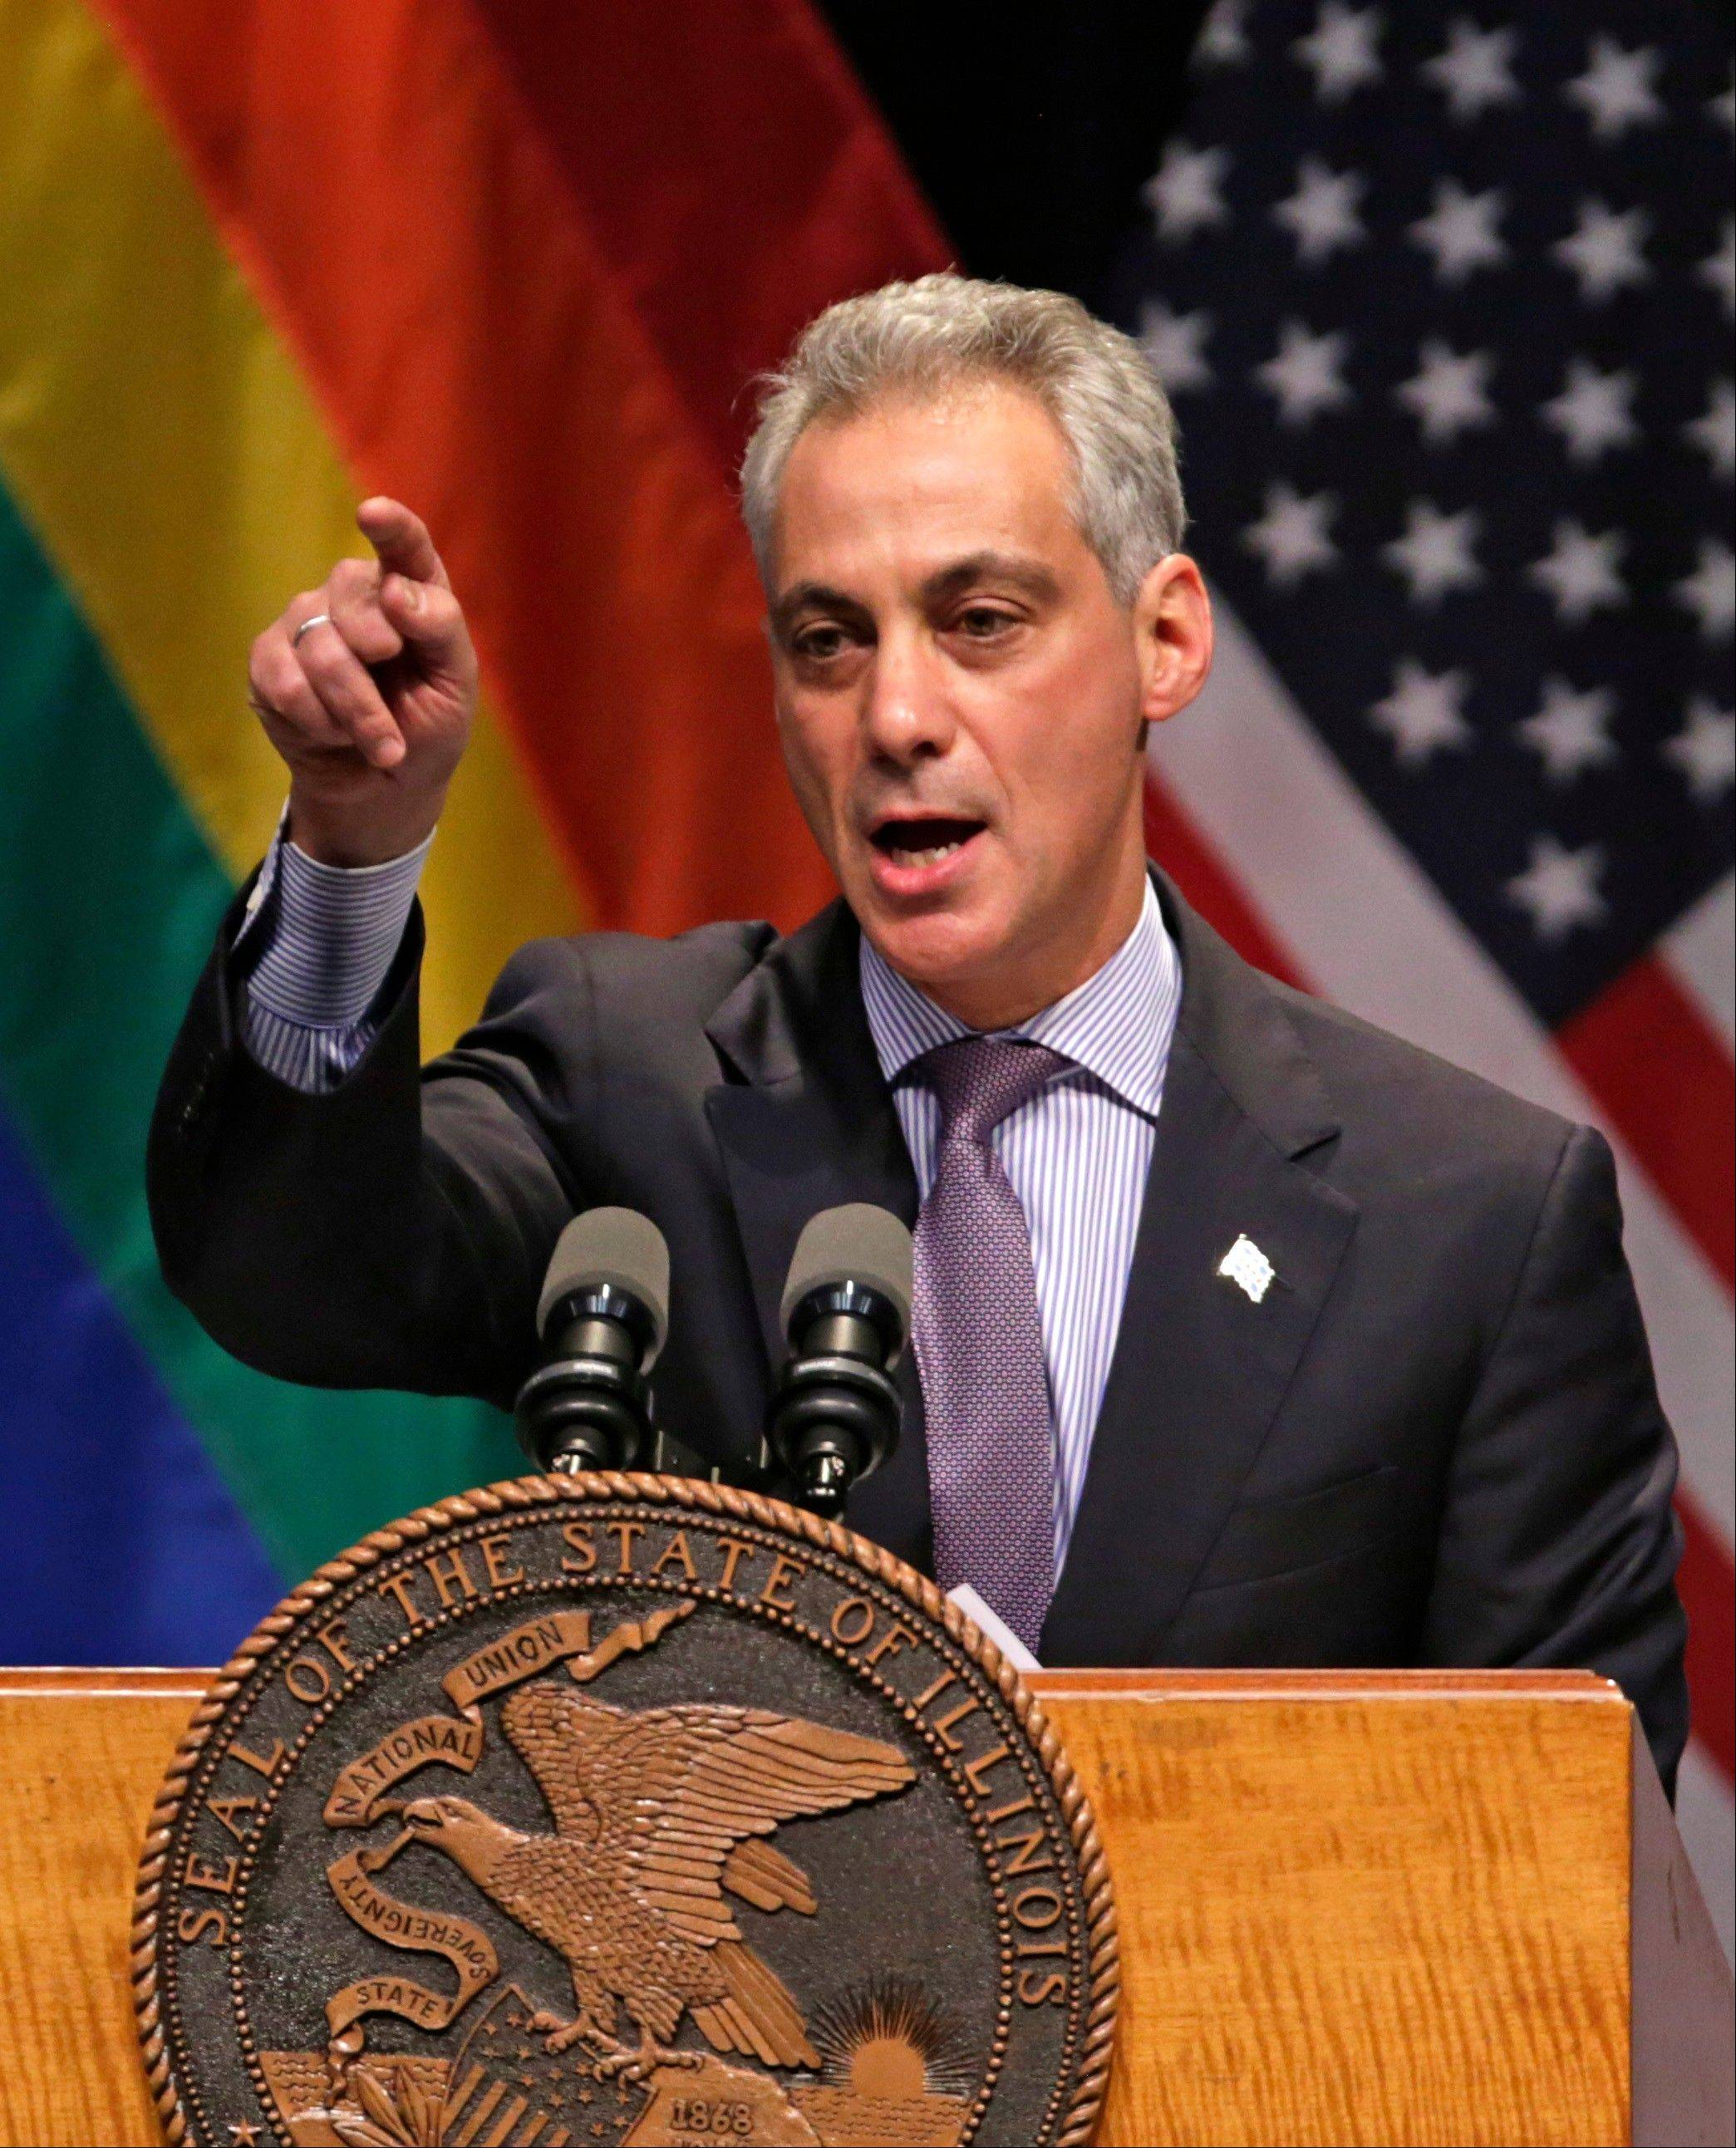 Chicago Mayor Rahm Emanuel speaks before Illinois Gov. Pat Quinn signs the Religious Freedom and Marriage Fairness Act into law.